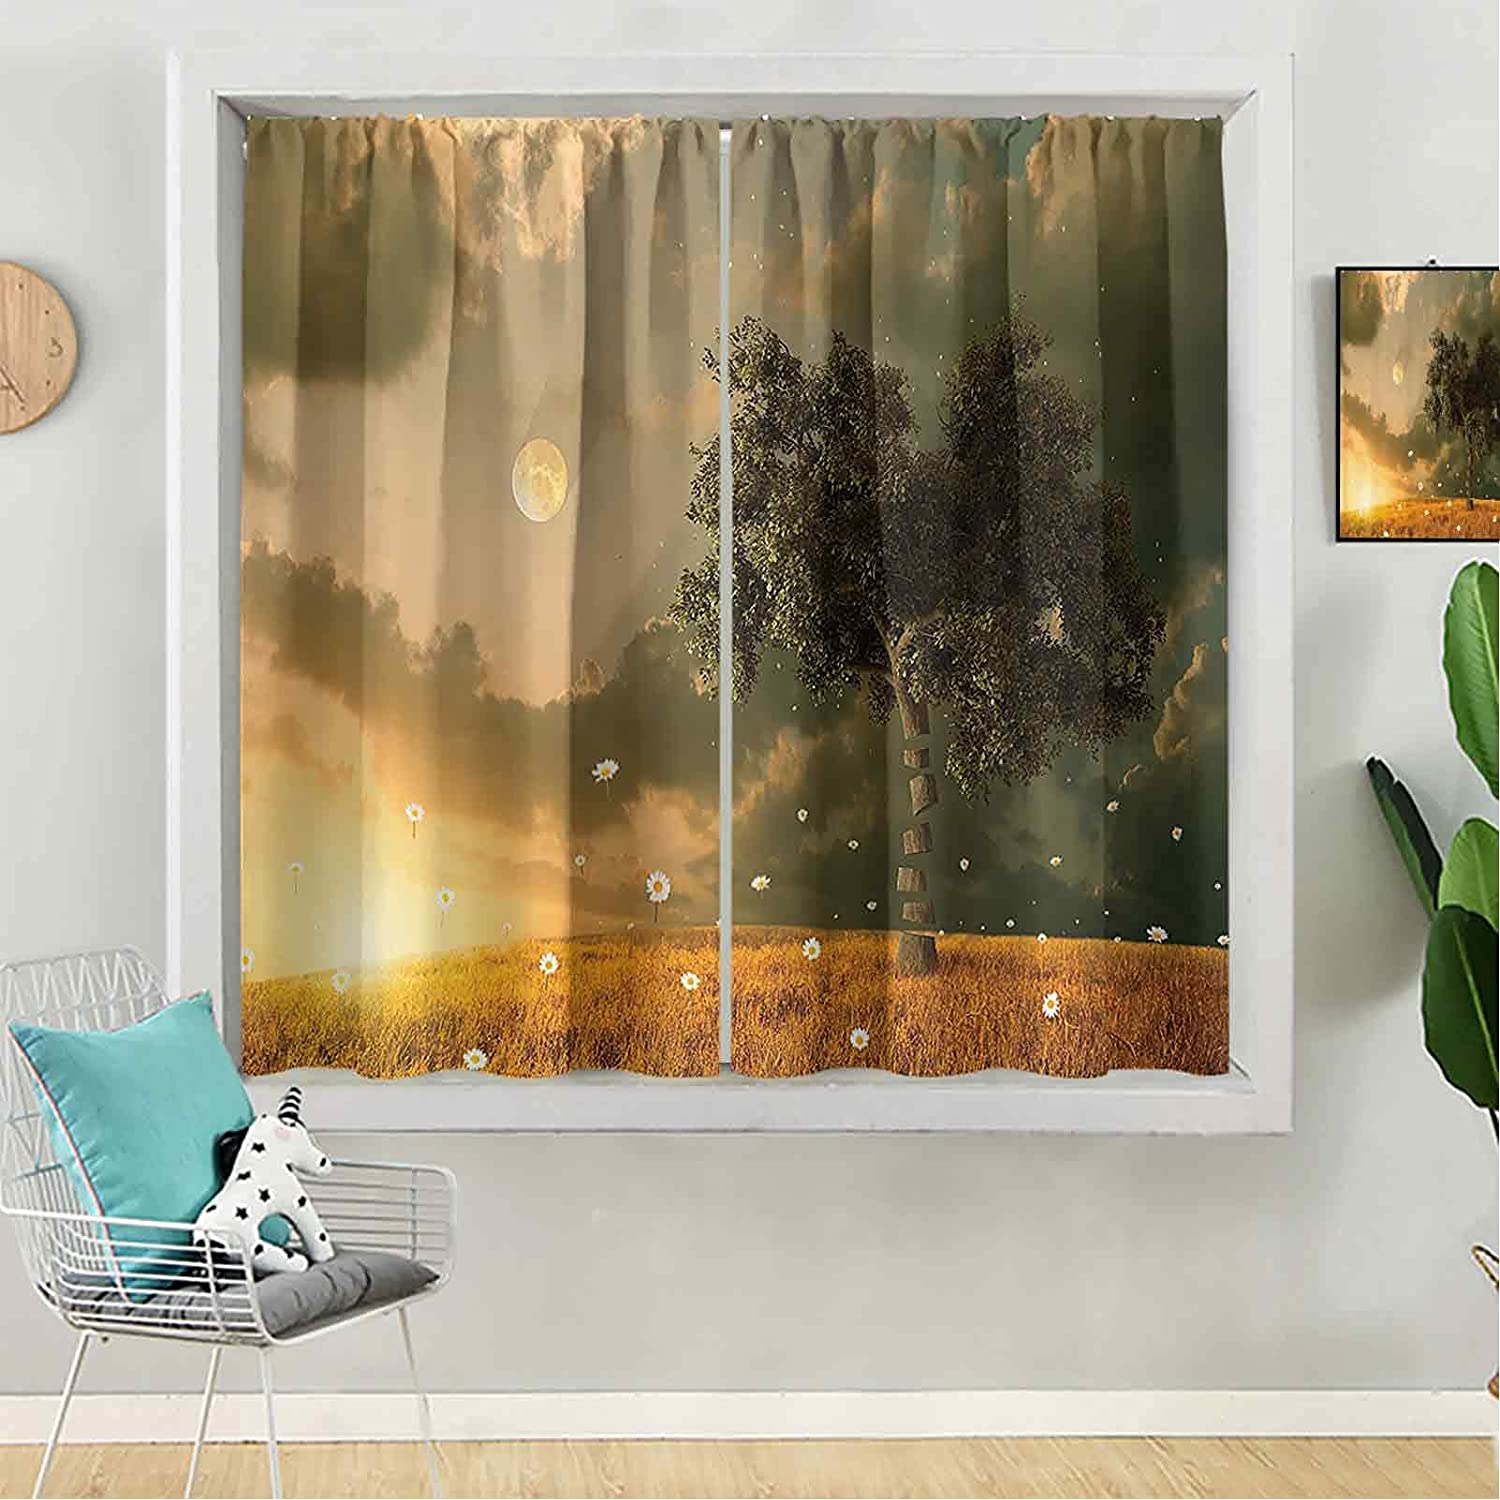 Blackout Curtain 72 inches Ranking TOP9 Long for Panel Window Opening large release sale B Kids